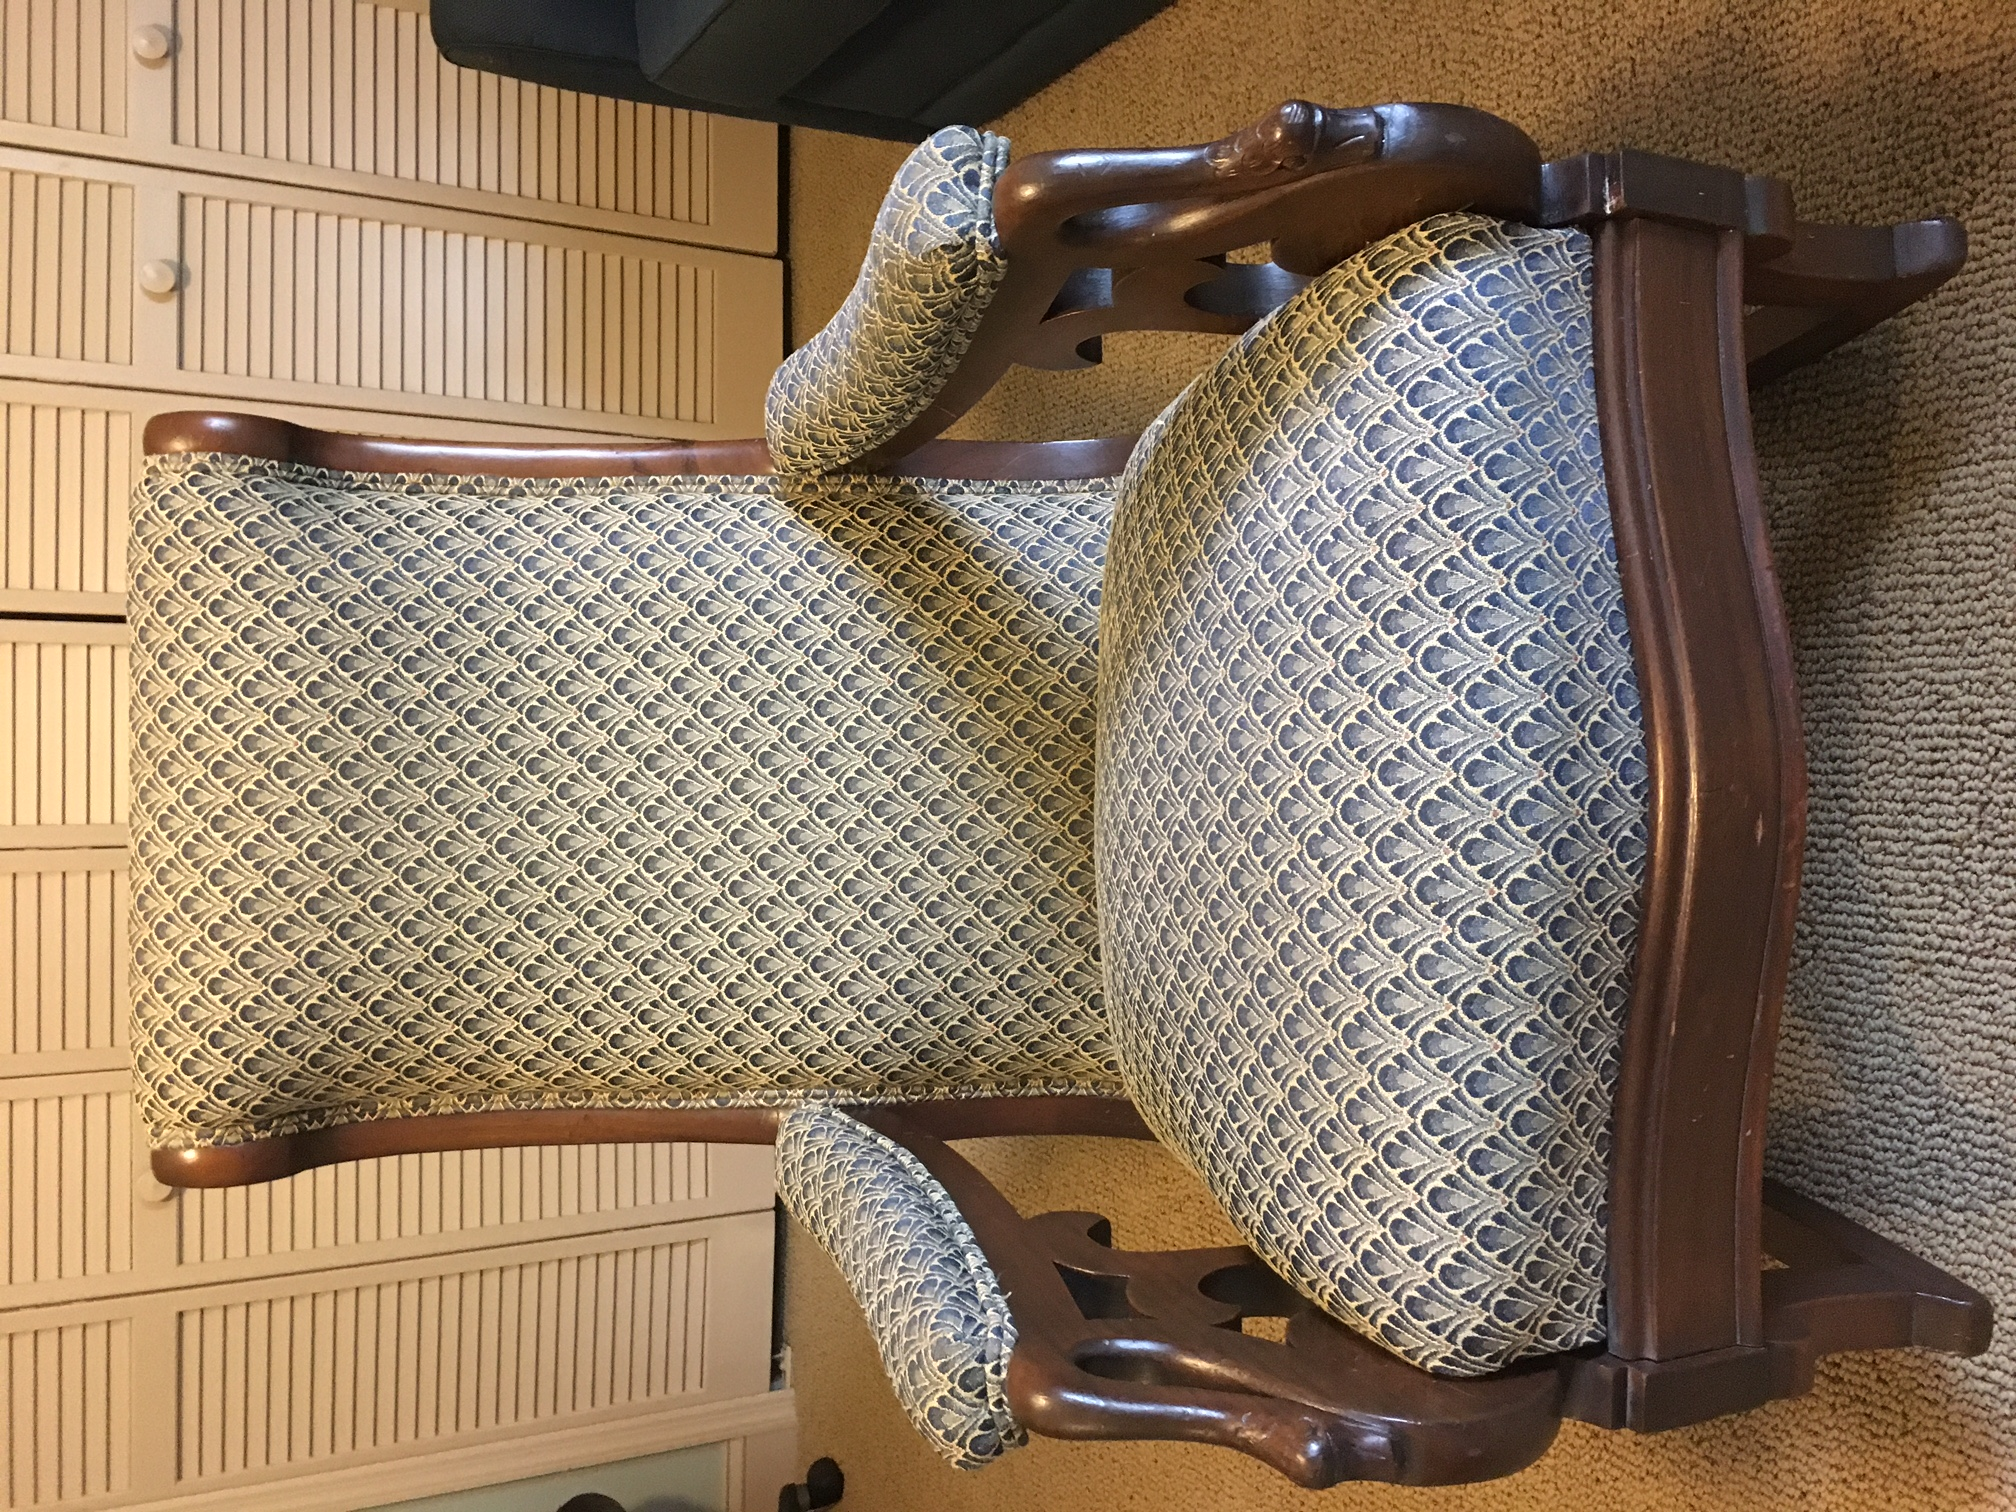 Miraculous Gooseneck Rocking Chair For Sale Antiques Com Classifieds Ibusinesslaw Wood Chair Design Ideas Ibusinesslaworg